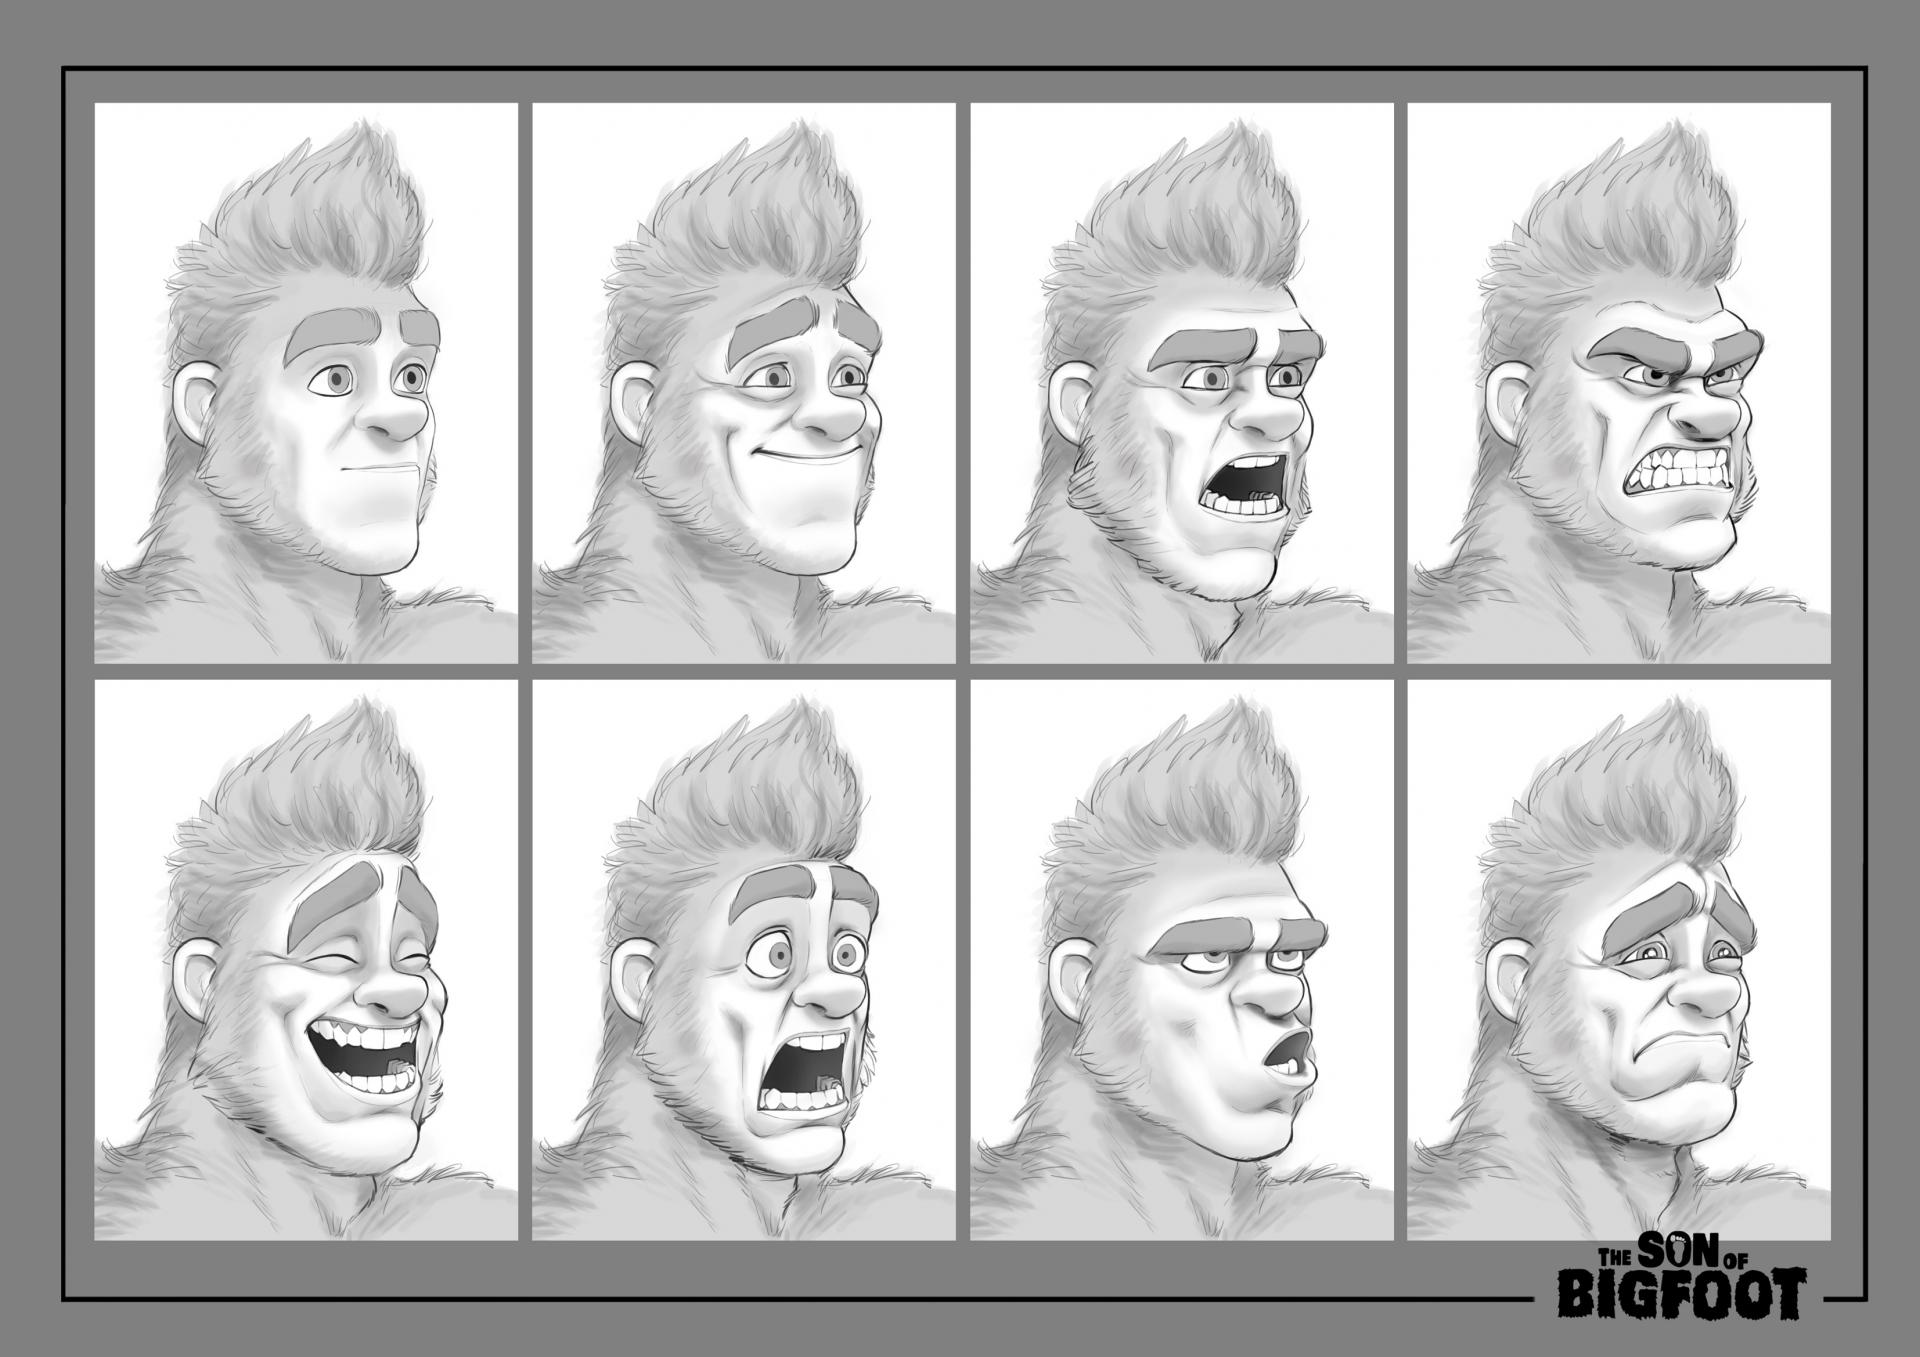 Bigfoot expression sheet